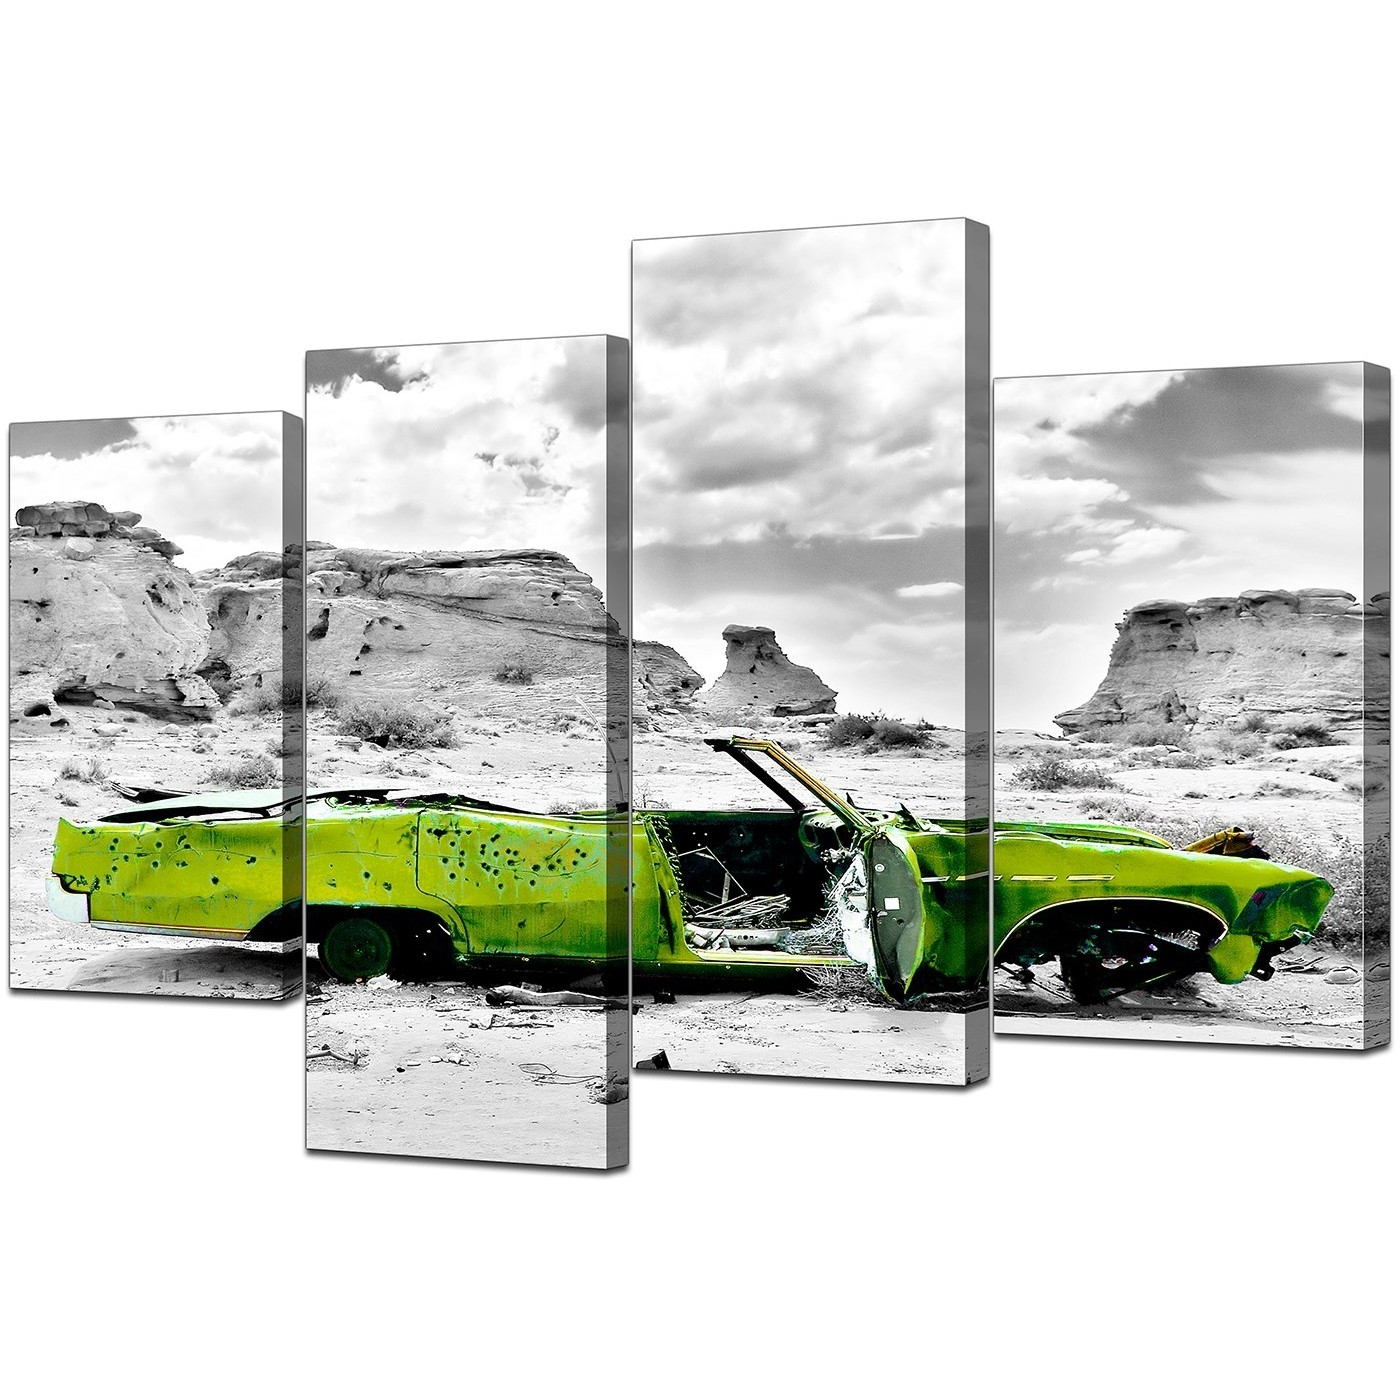 Canvas Art Of Green Car In Black & White For Your Office Intended For Widely Used Lime Green Canvas Wall Art (Gallery 8 of 15)